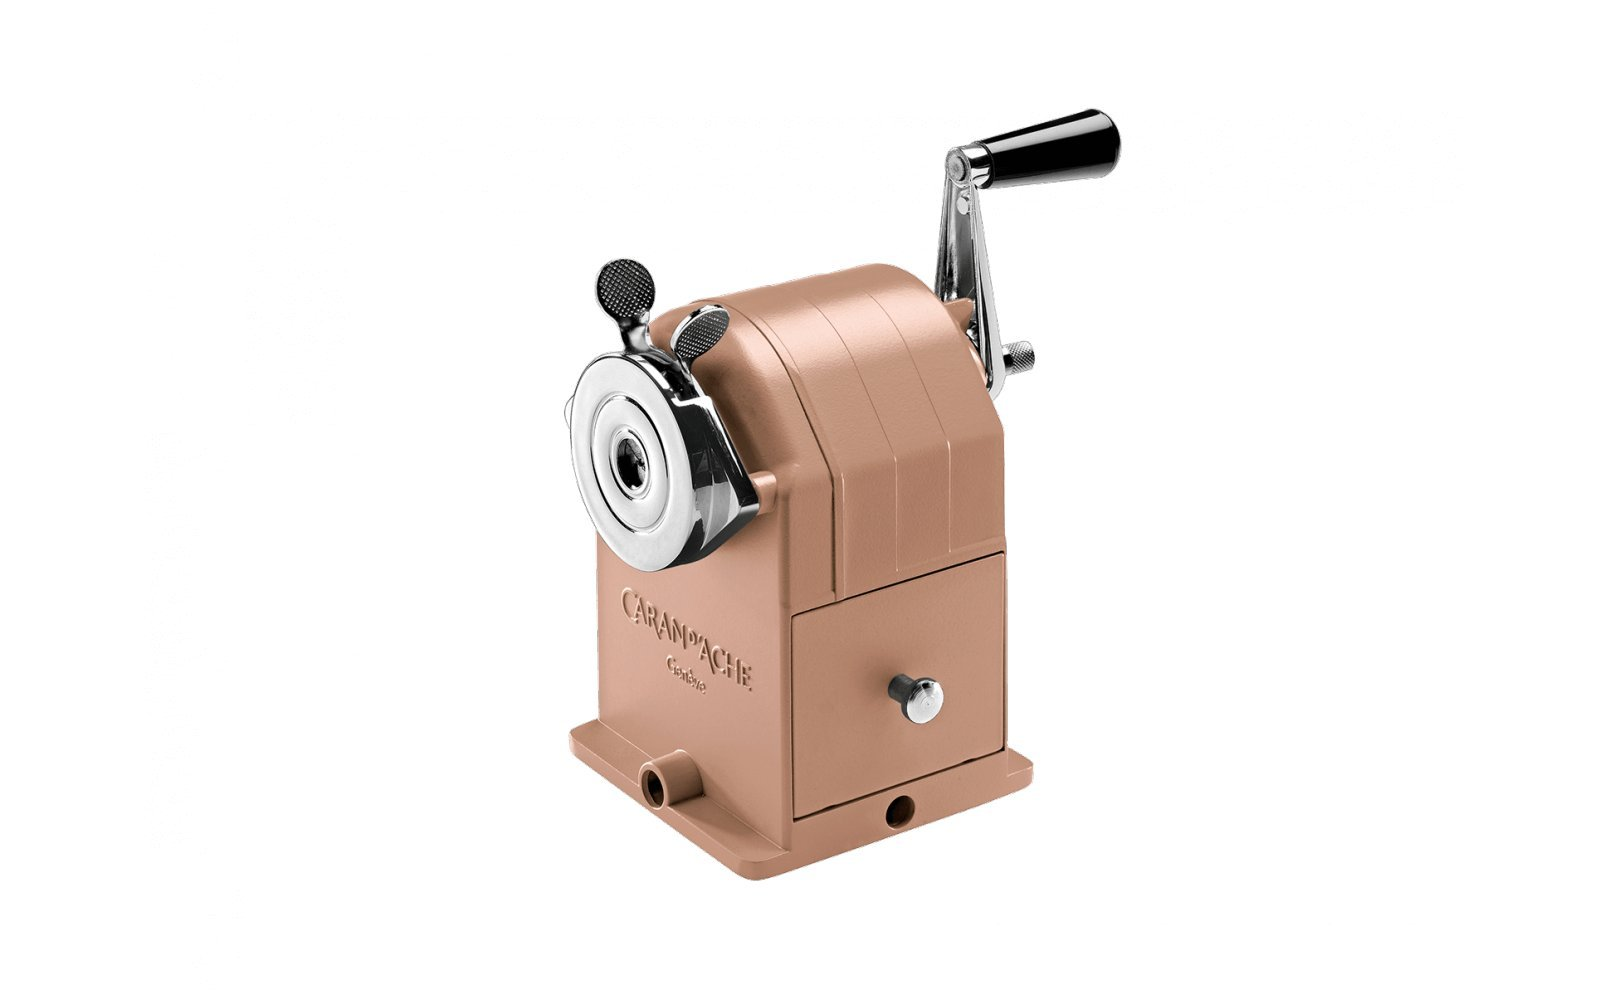 Caran d'Ache CD455.997 Brut Rose Sharpening Machine